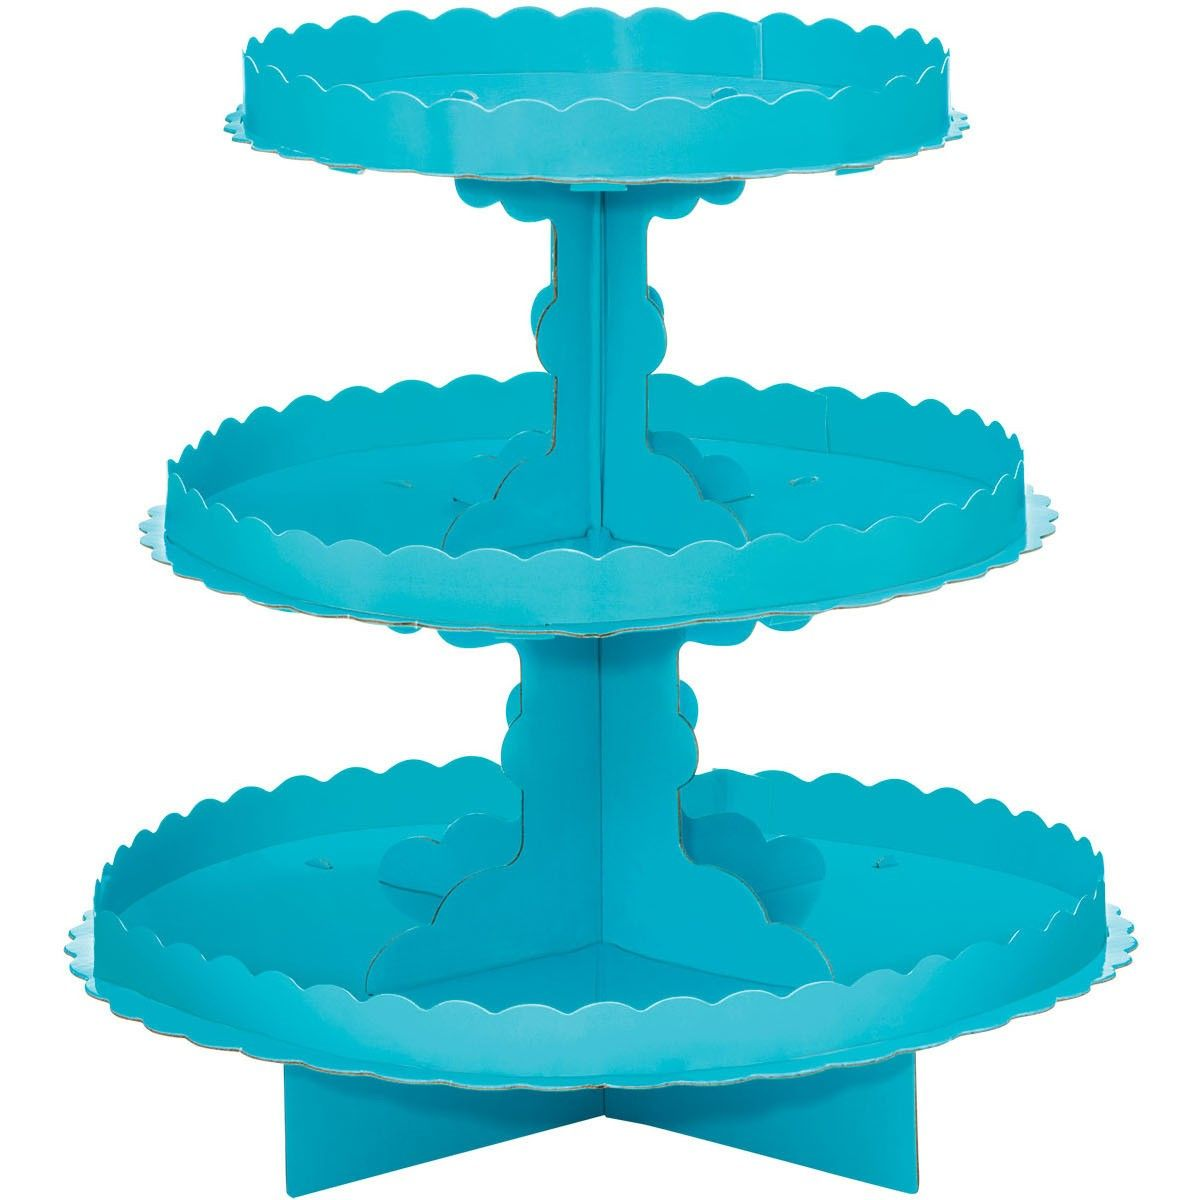 Treat Stands 3 Tier Caribbean Blue Treat Stand Cupcake Tiers Stand Caribbean Party Decorations